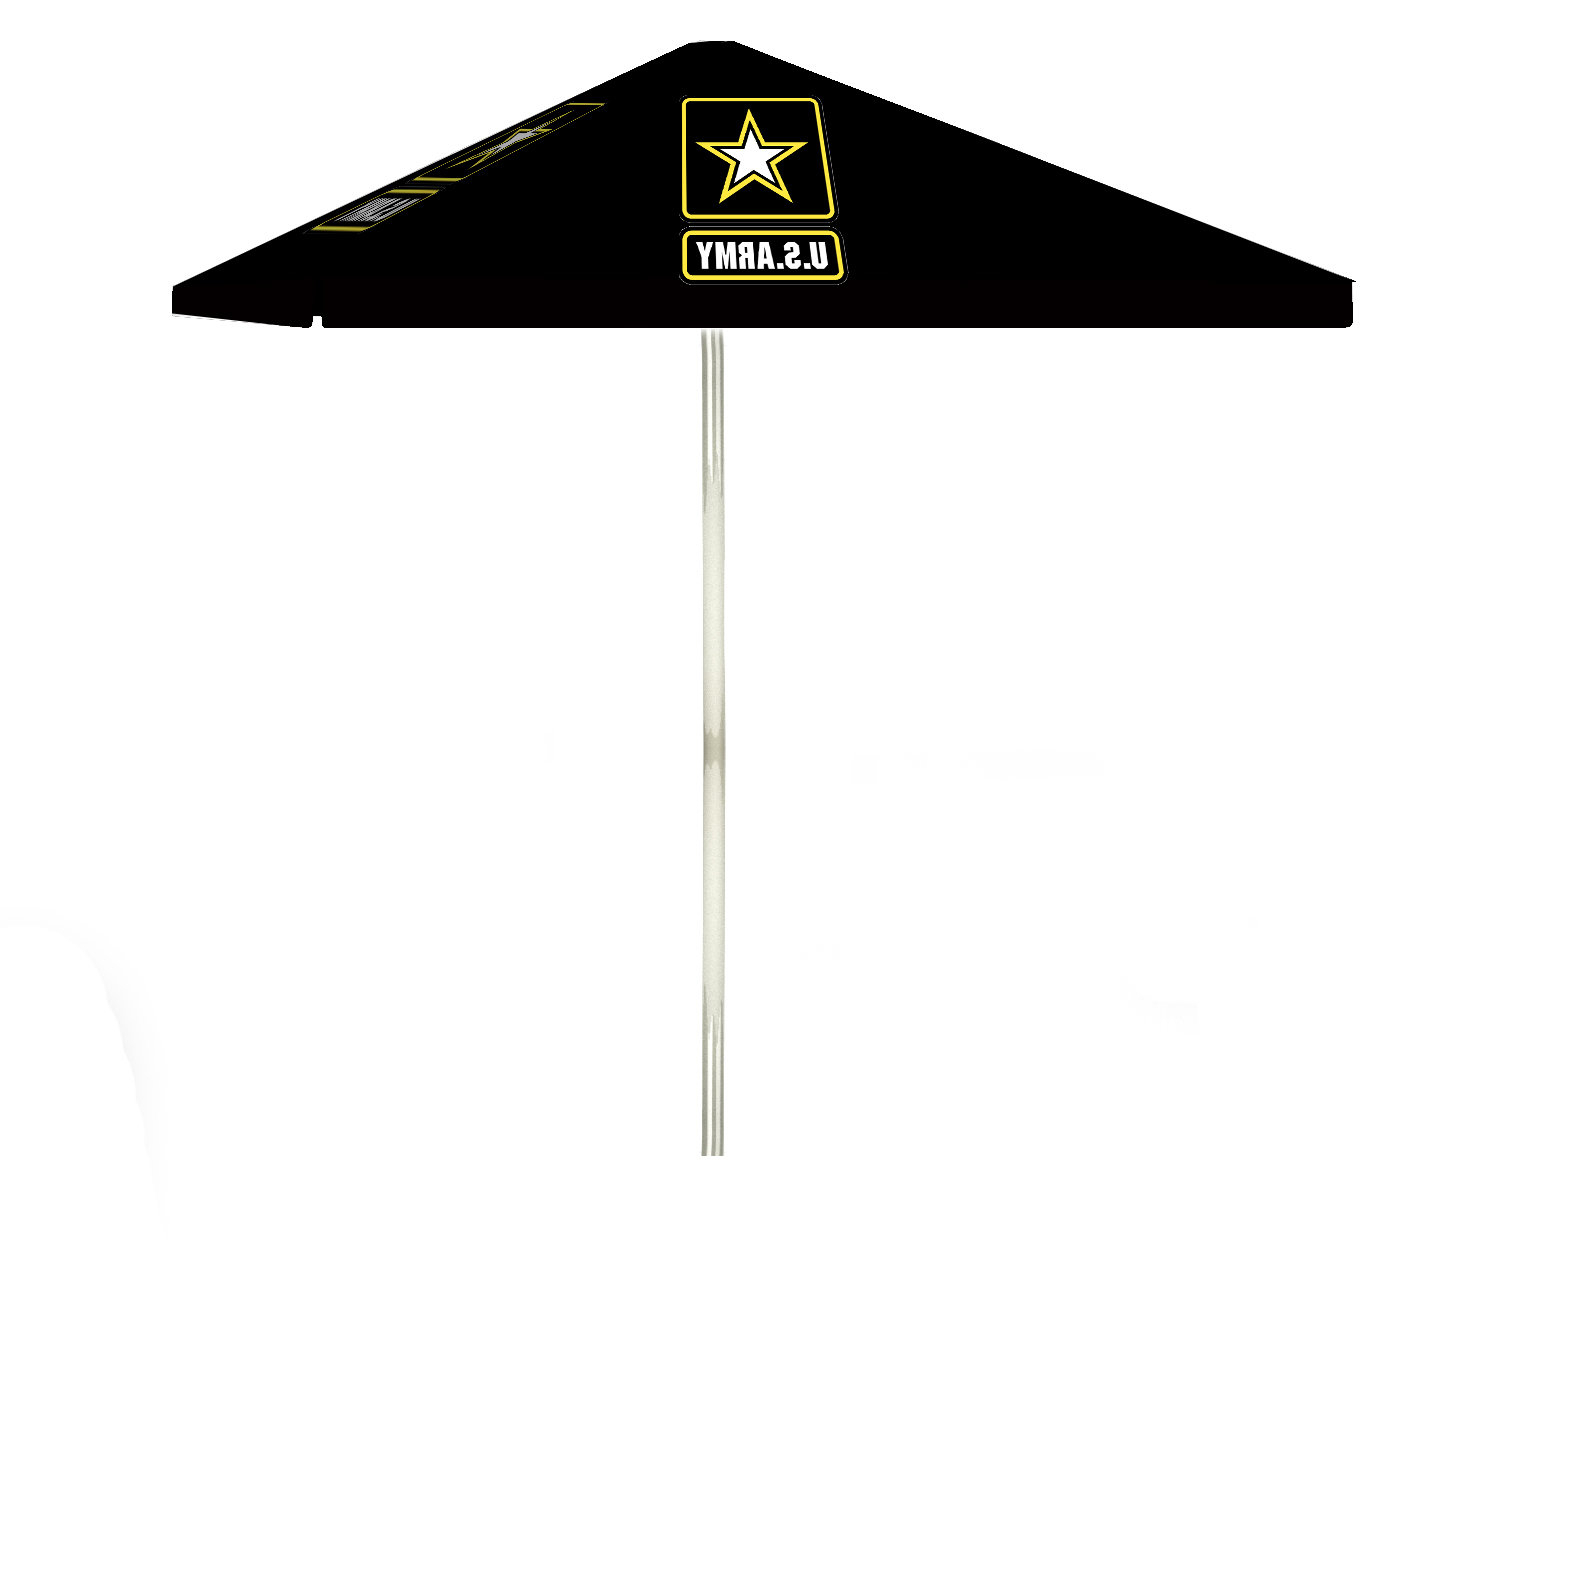 6' Square Market Umbrella In Fashionable Hatten Market Umbrellas (Gallery 10 of 20)